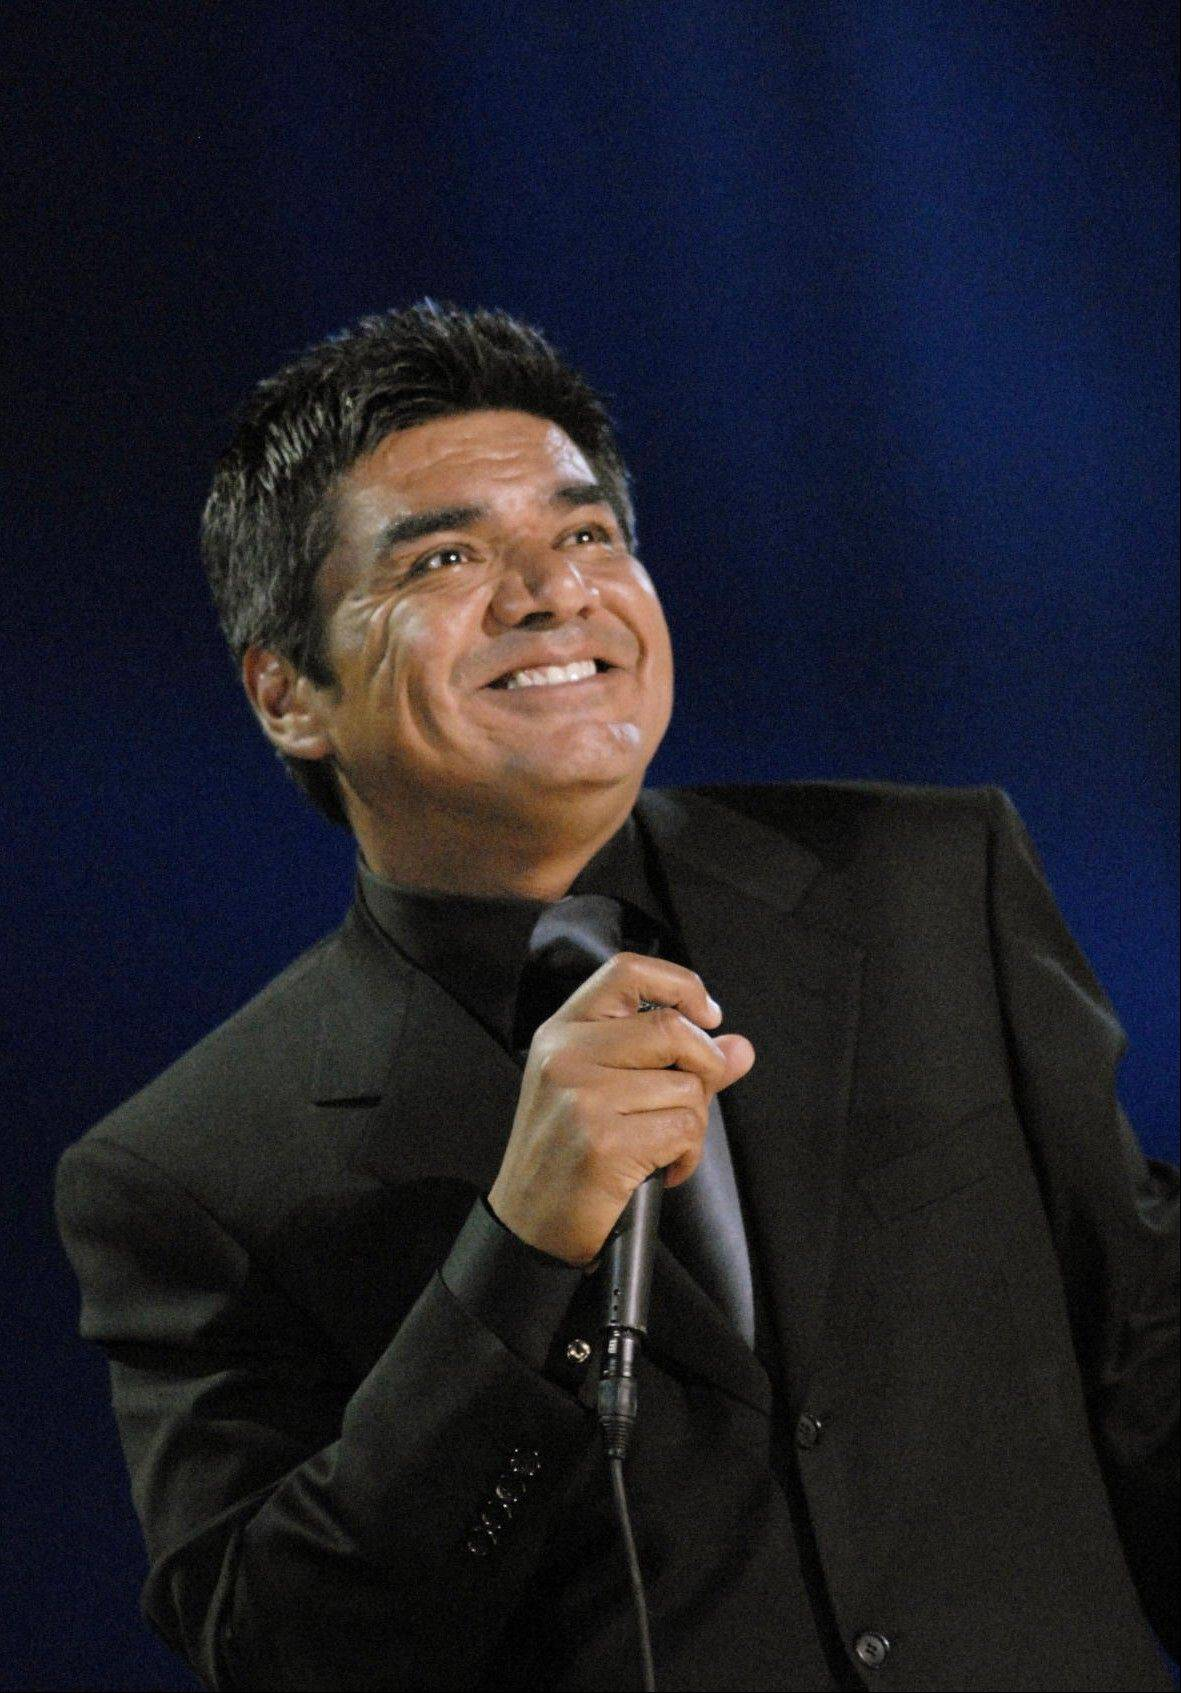 Comedian George Lopez appears at the Genesee Theatre in Waukegan on Saturday, Nov. 2.